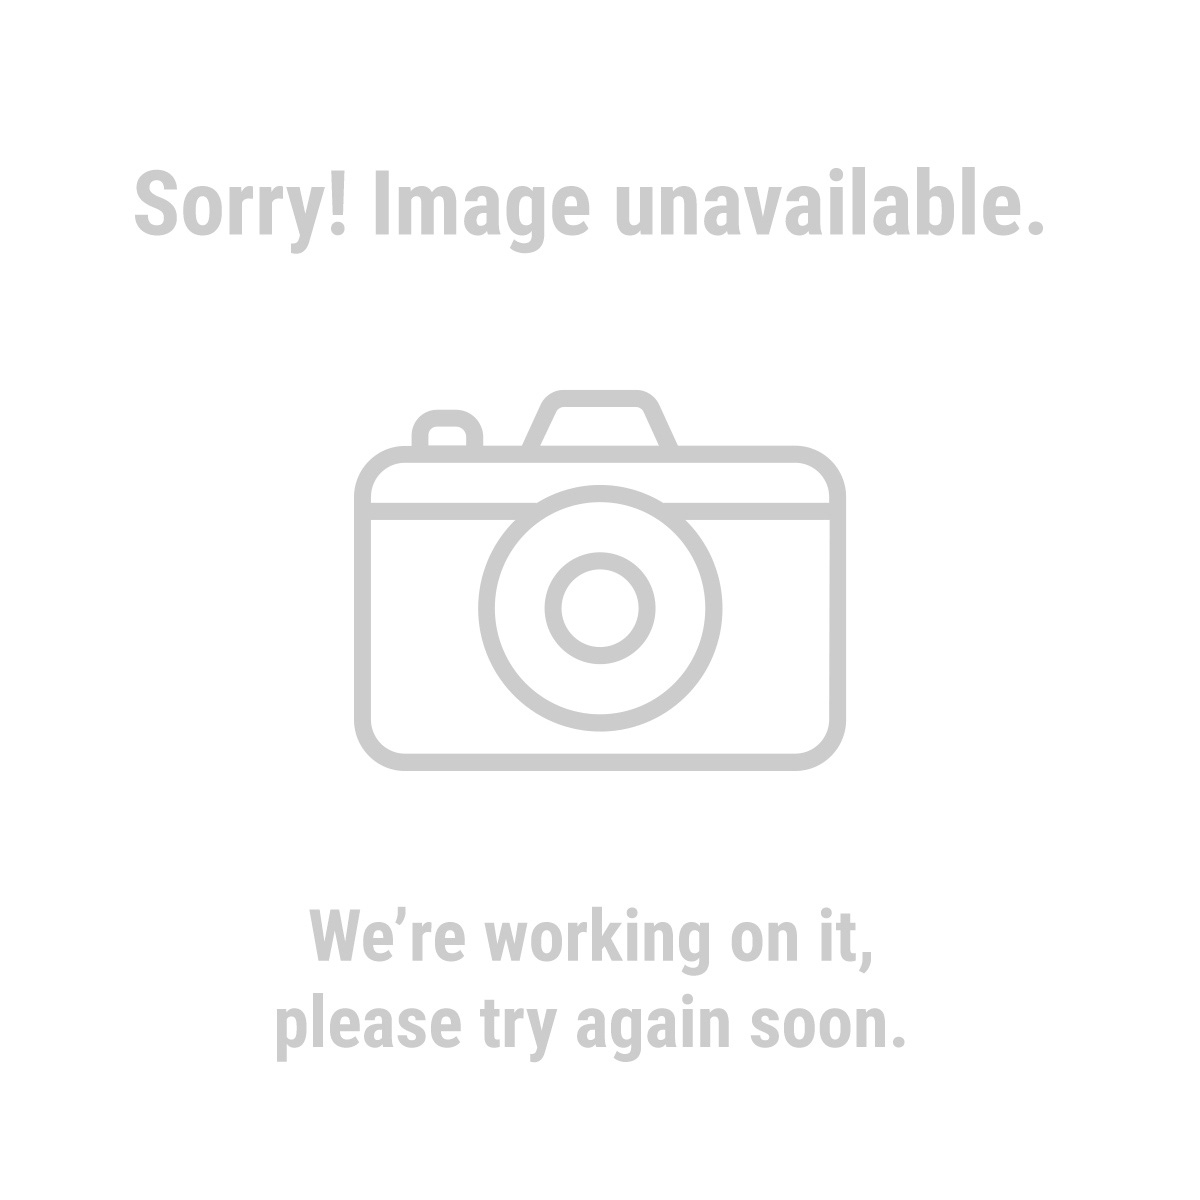 Western Safety Gloves 60650 String Knit with Double Sided PVC Dots Work Gloves 6 Pair